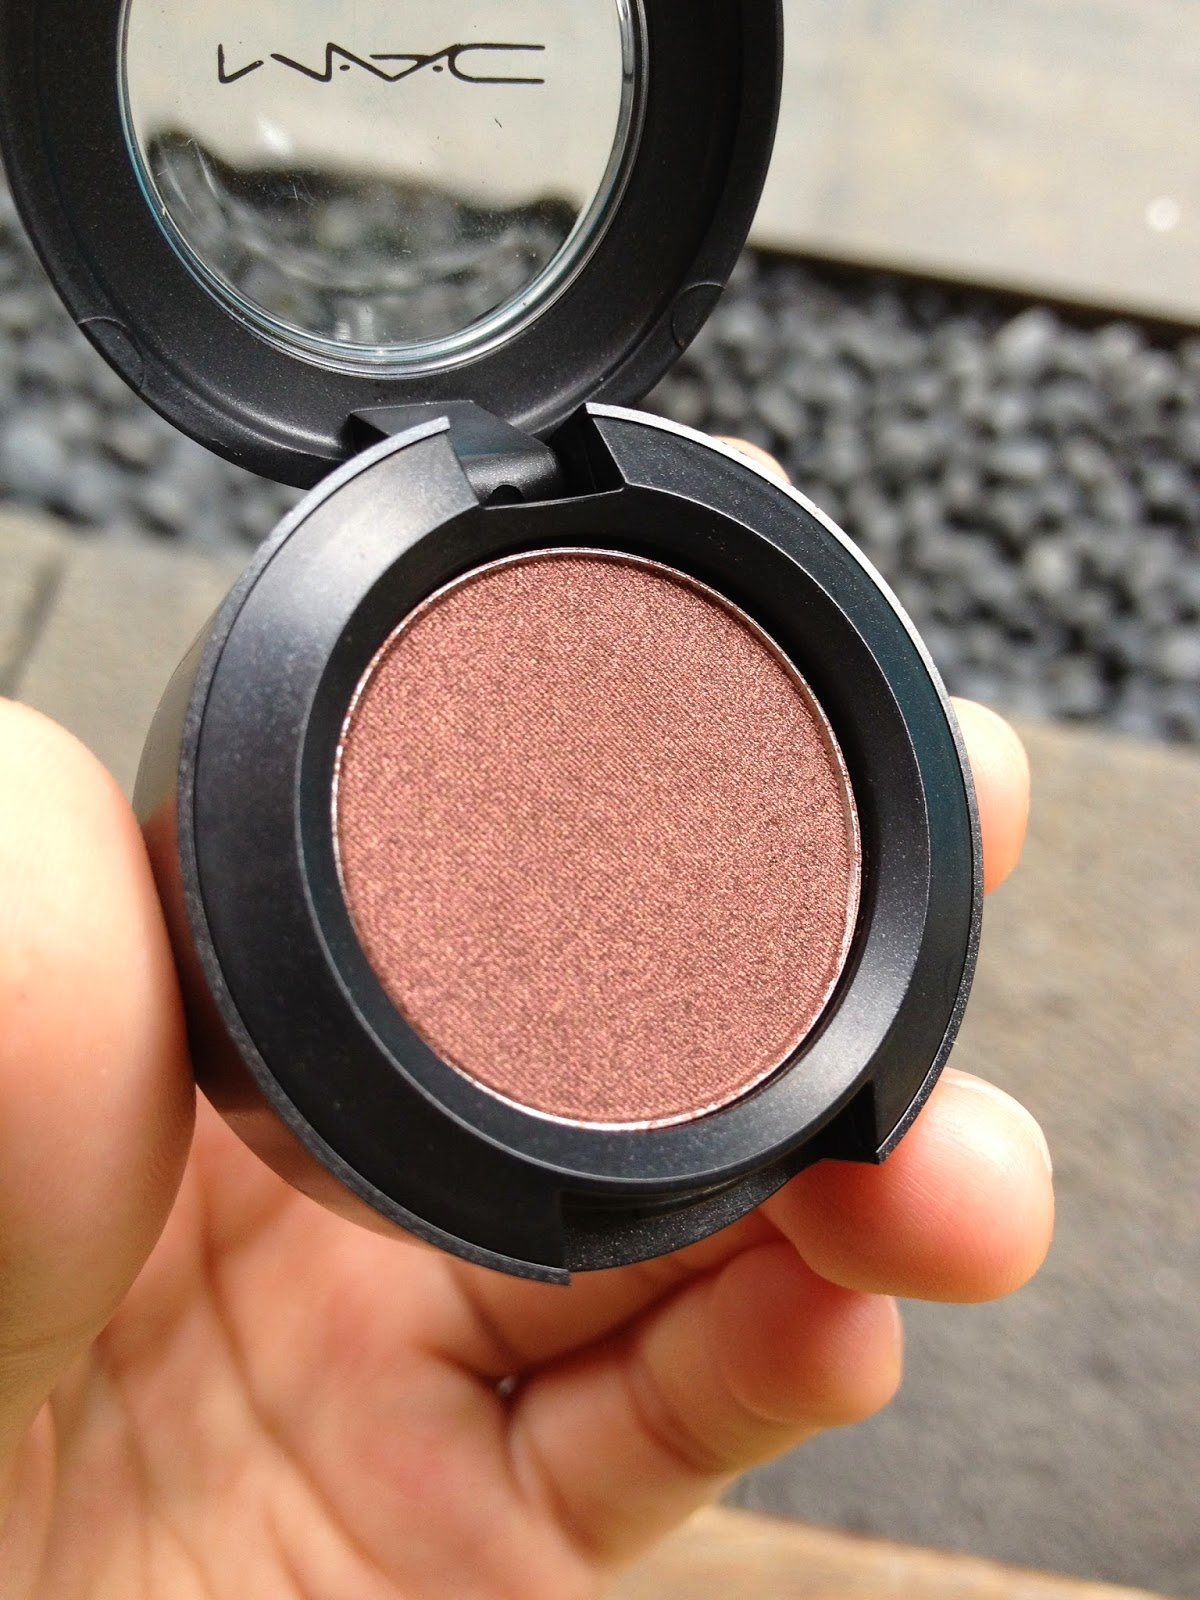 Mac Cranberry Eyeshadow Review Swatch And Demo: A Little Bit Of Everything: MAC Eyeshadows Swatch (Vanilla